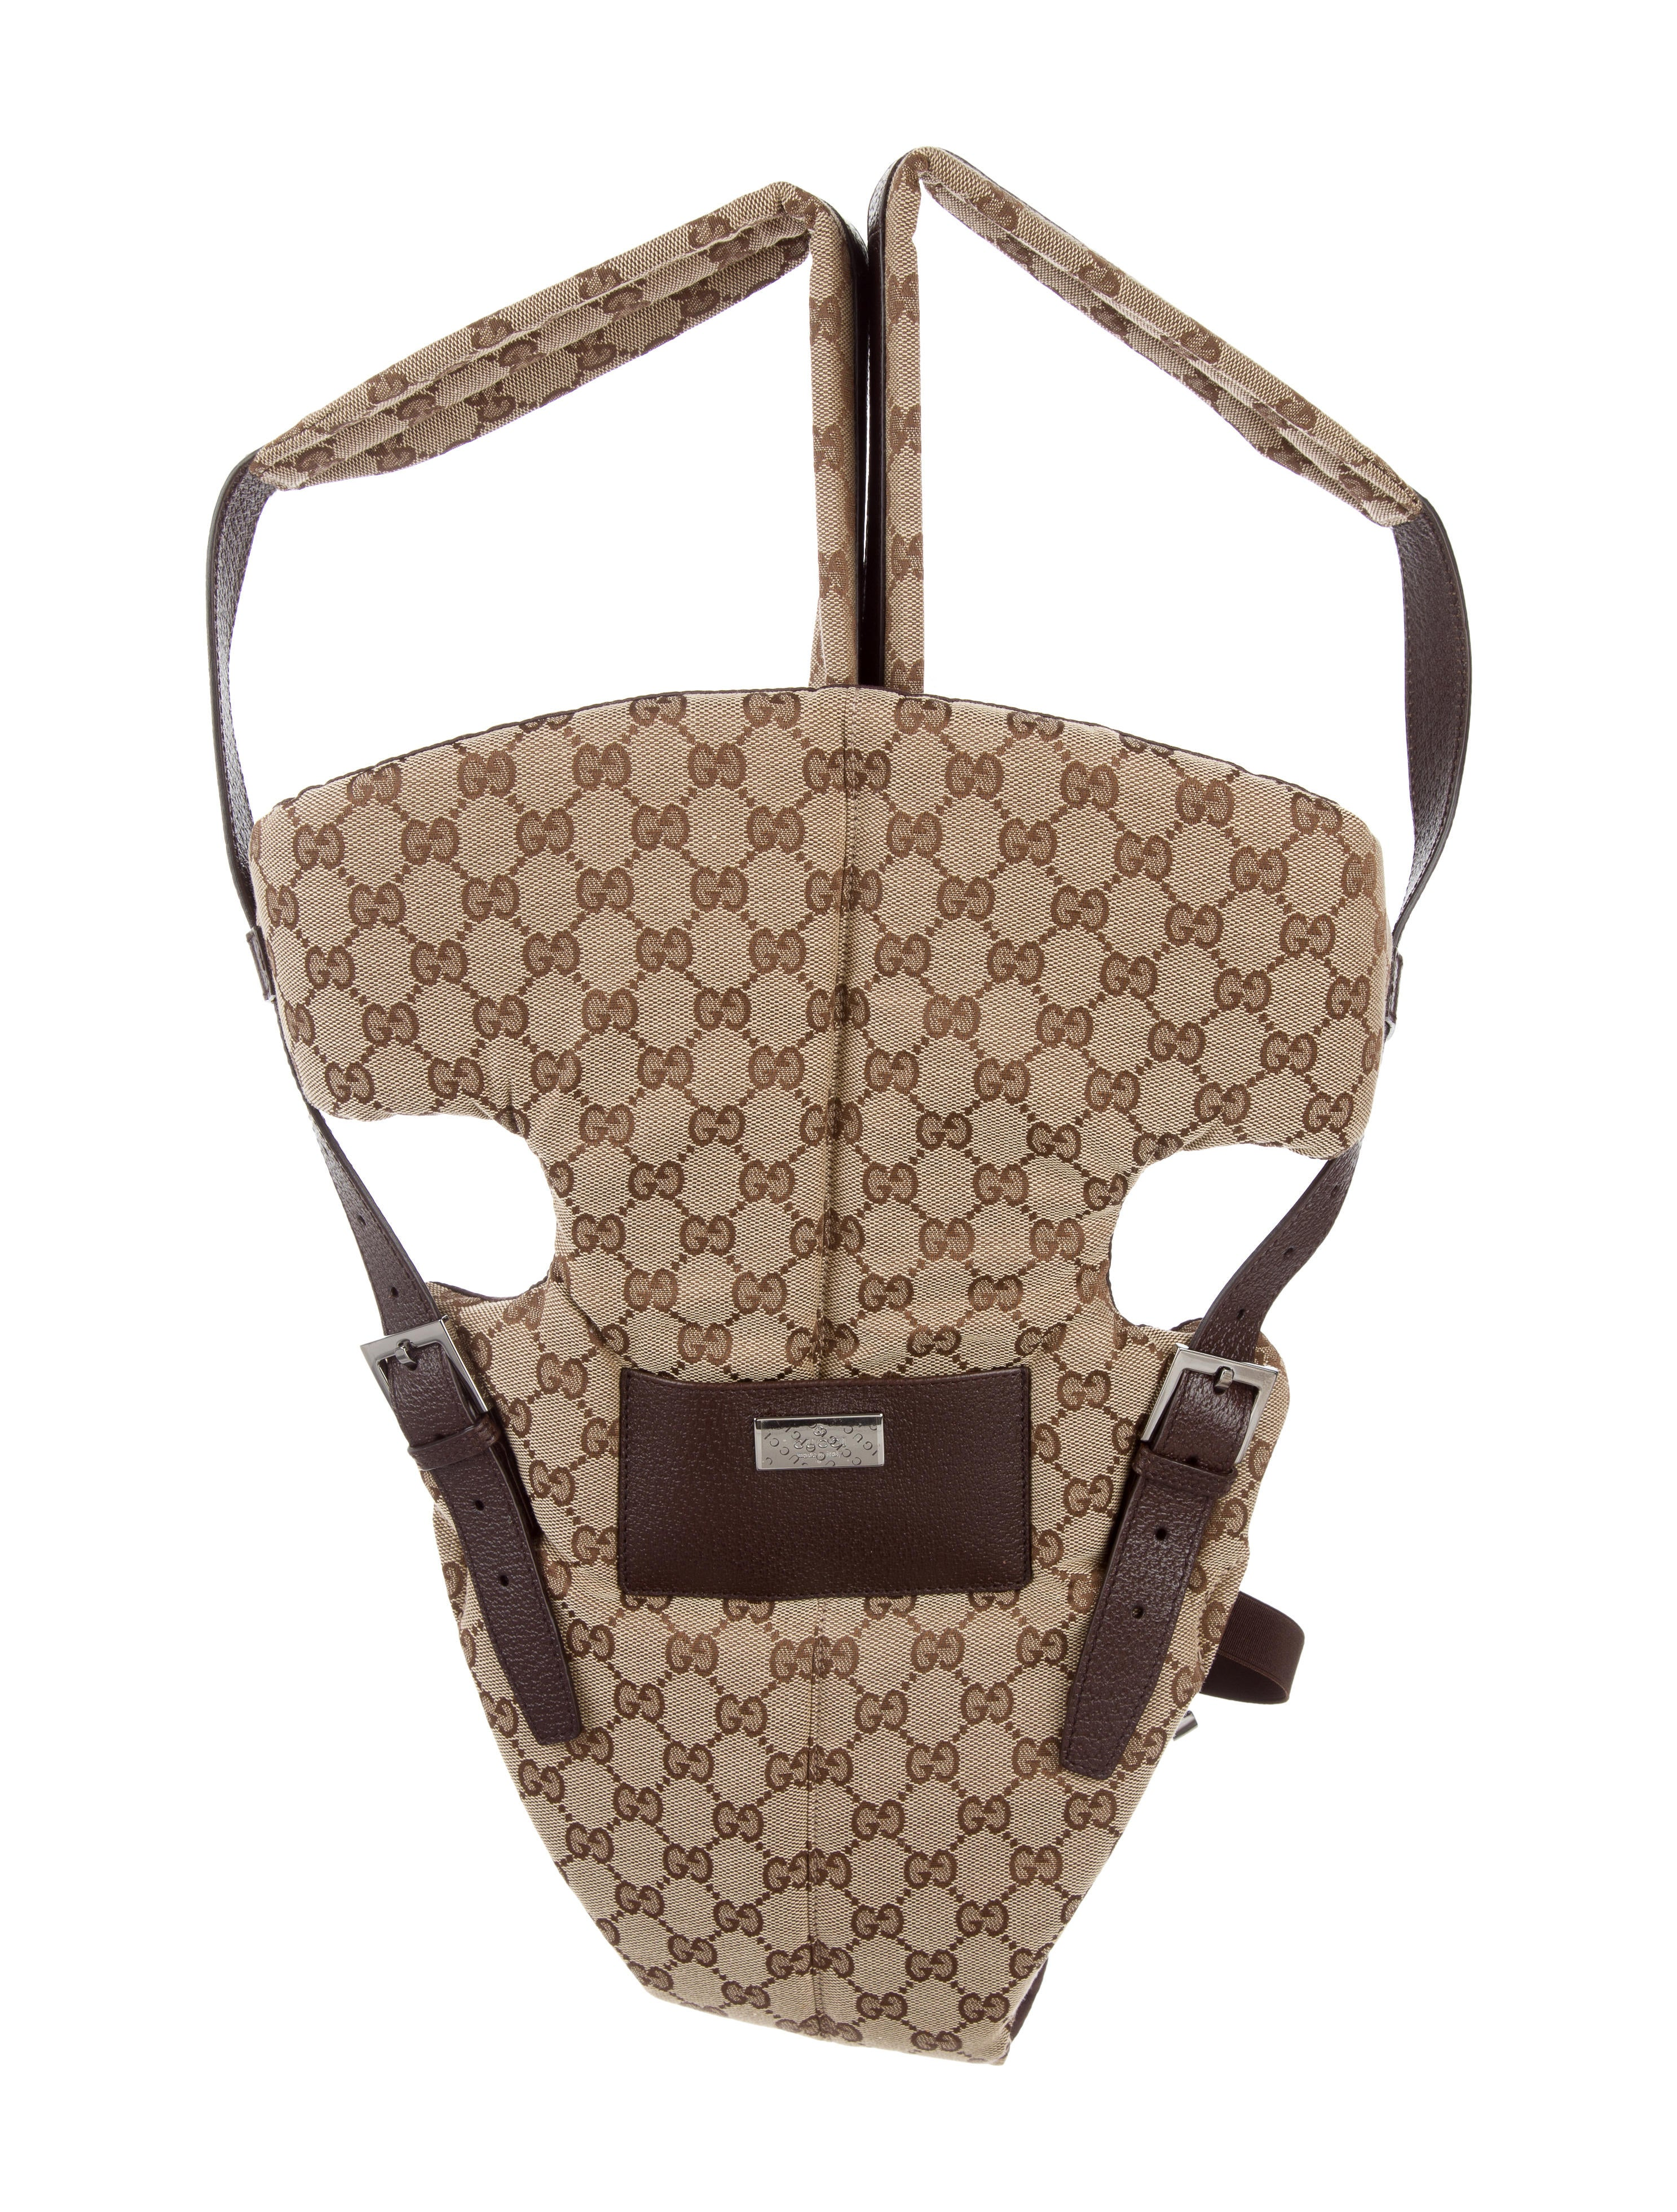 Gucci GG Baby Carrier w  Tags - Baby Gear - GUC165871